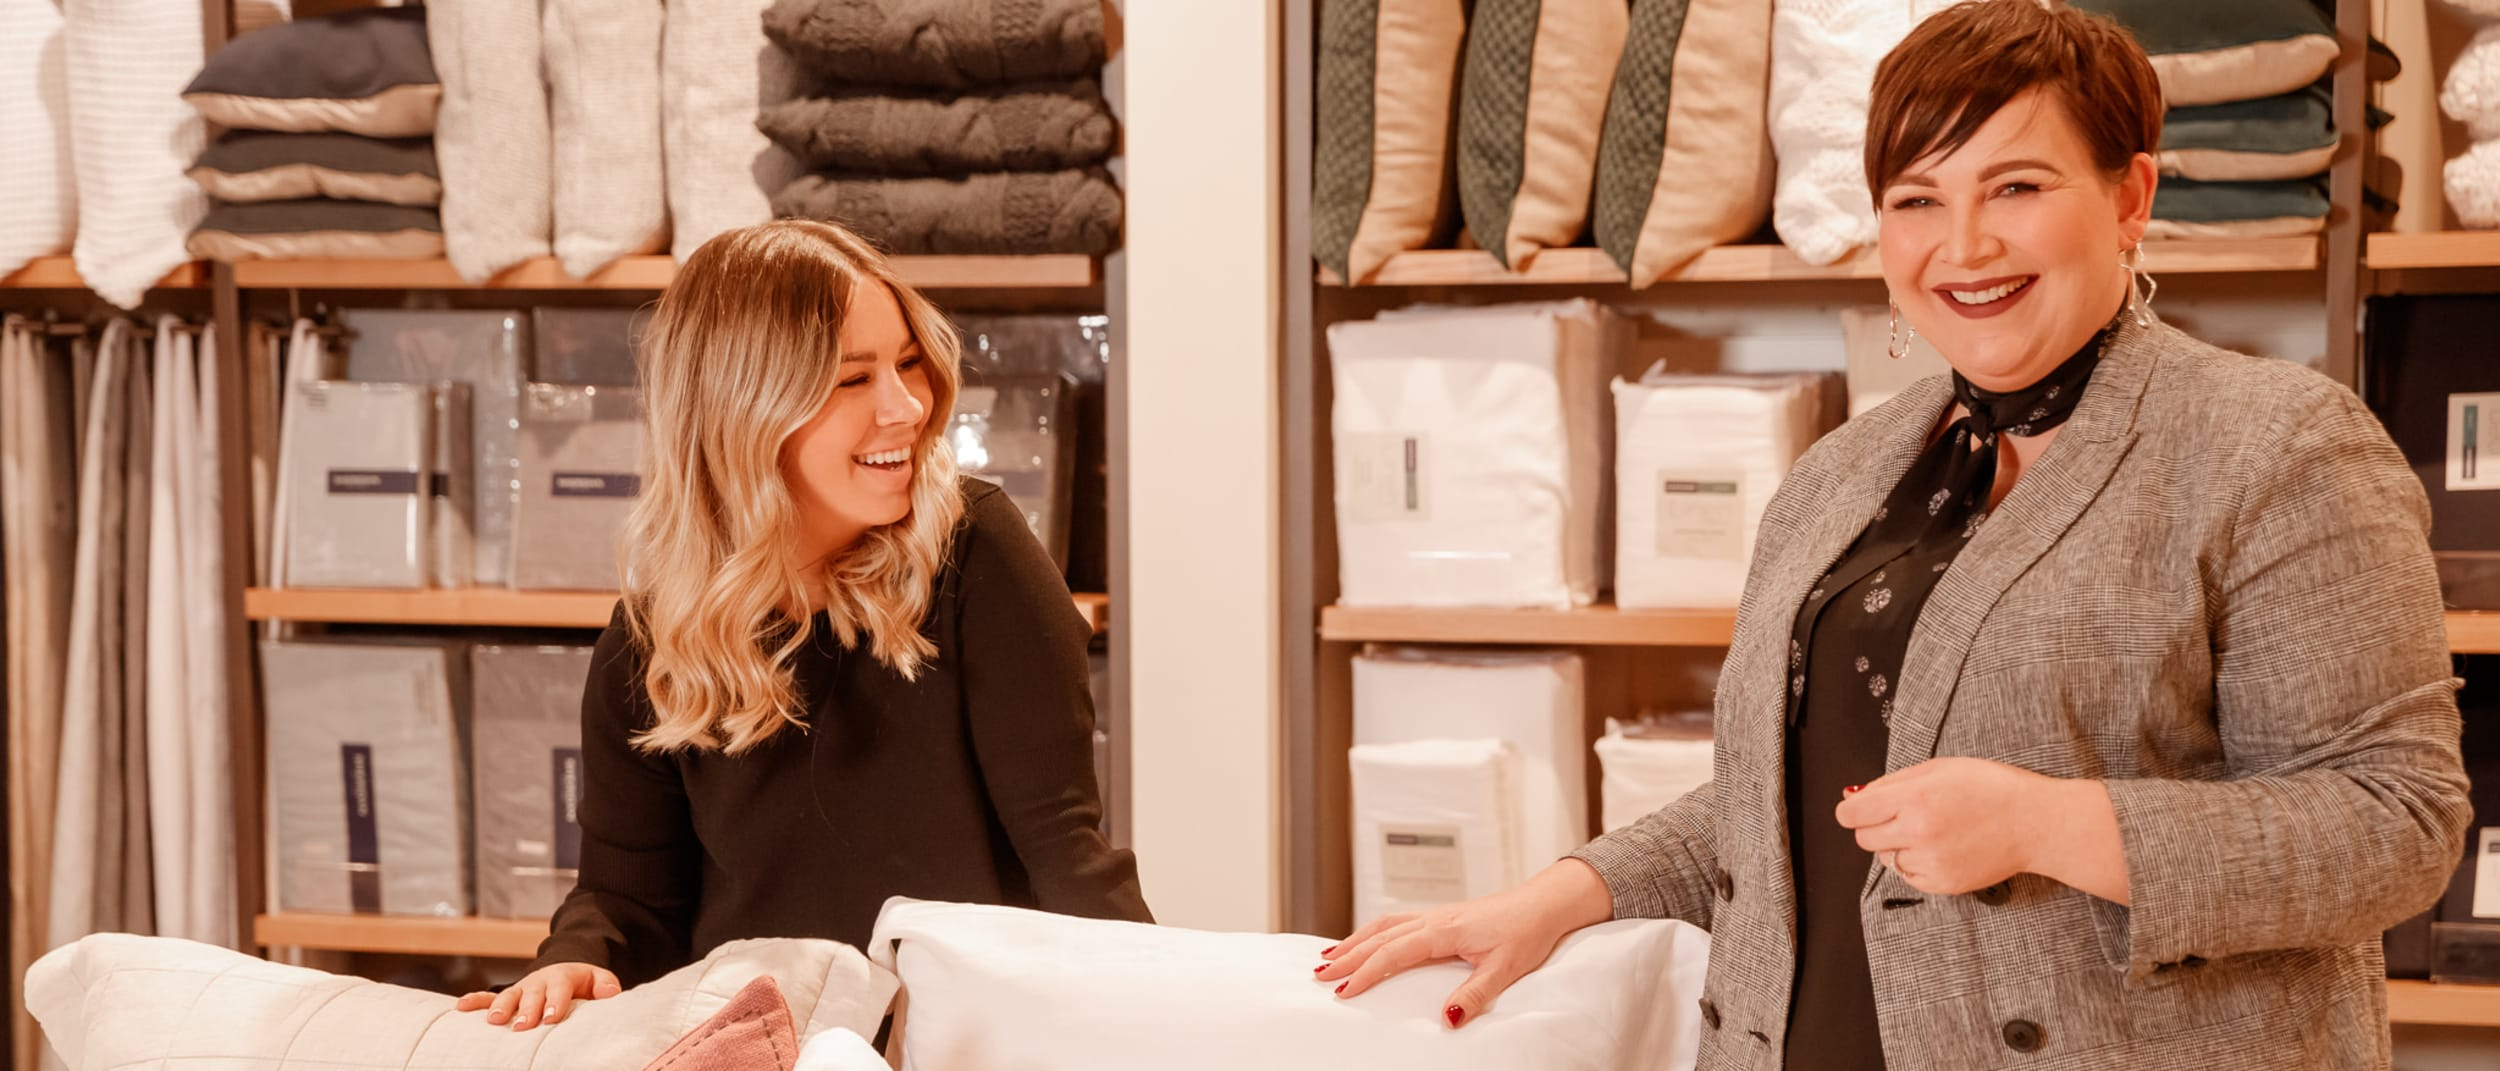 Meet the Stylists: Interior Styling Sessions